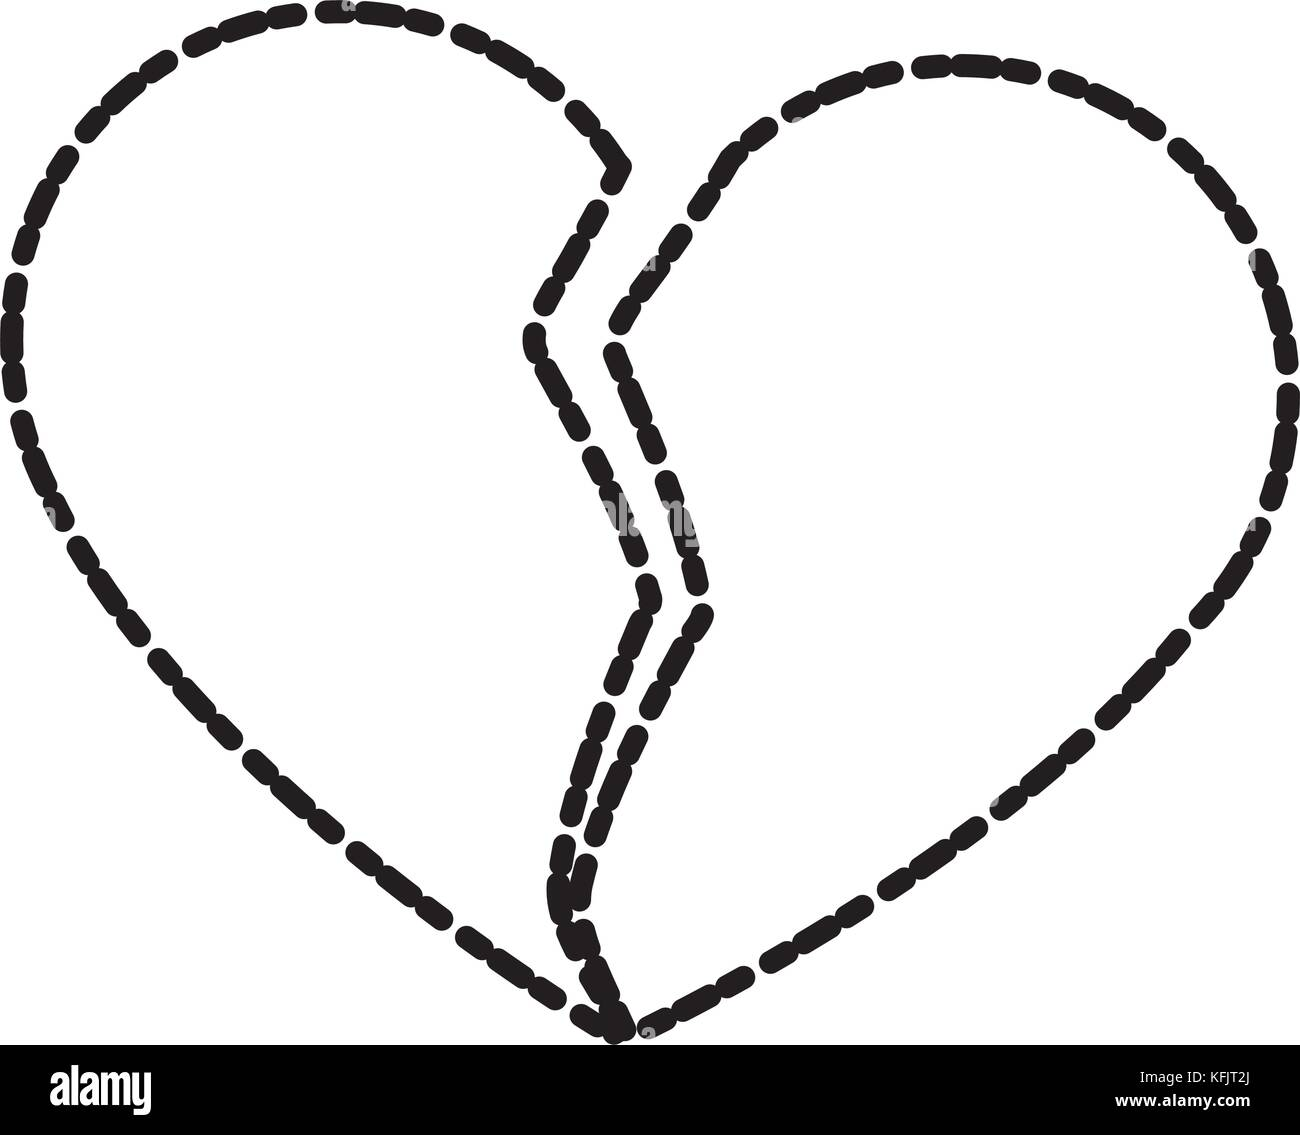 Broken heart symbol black and white stock photos images alamy broken heart symbol stock image buycottarizona Image collections